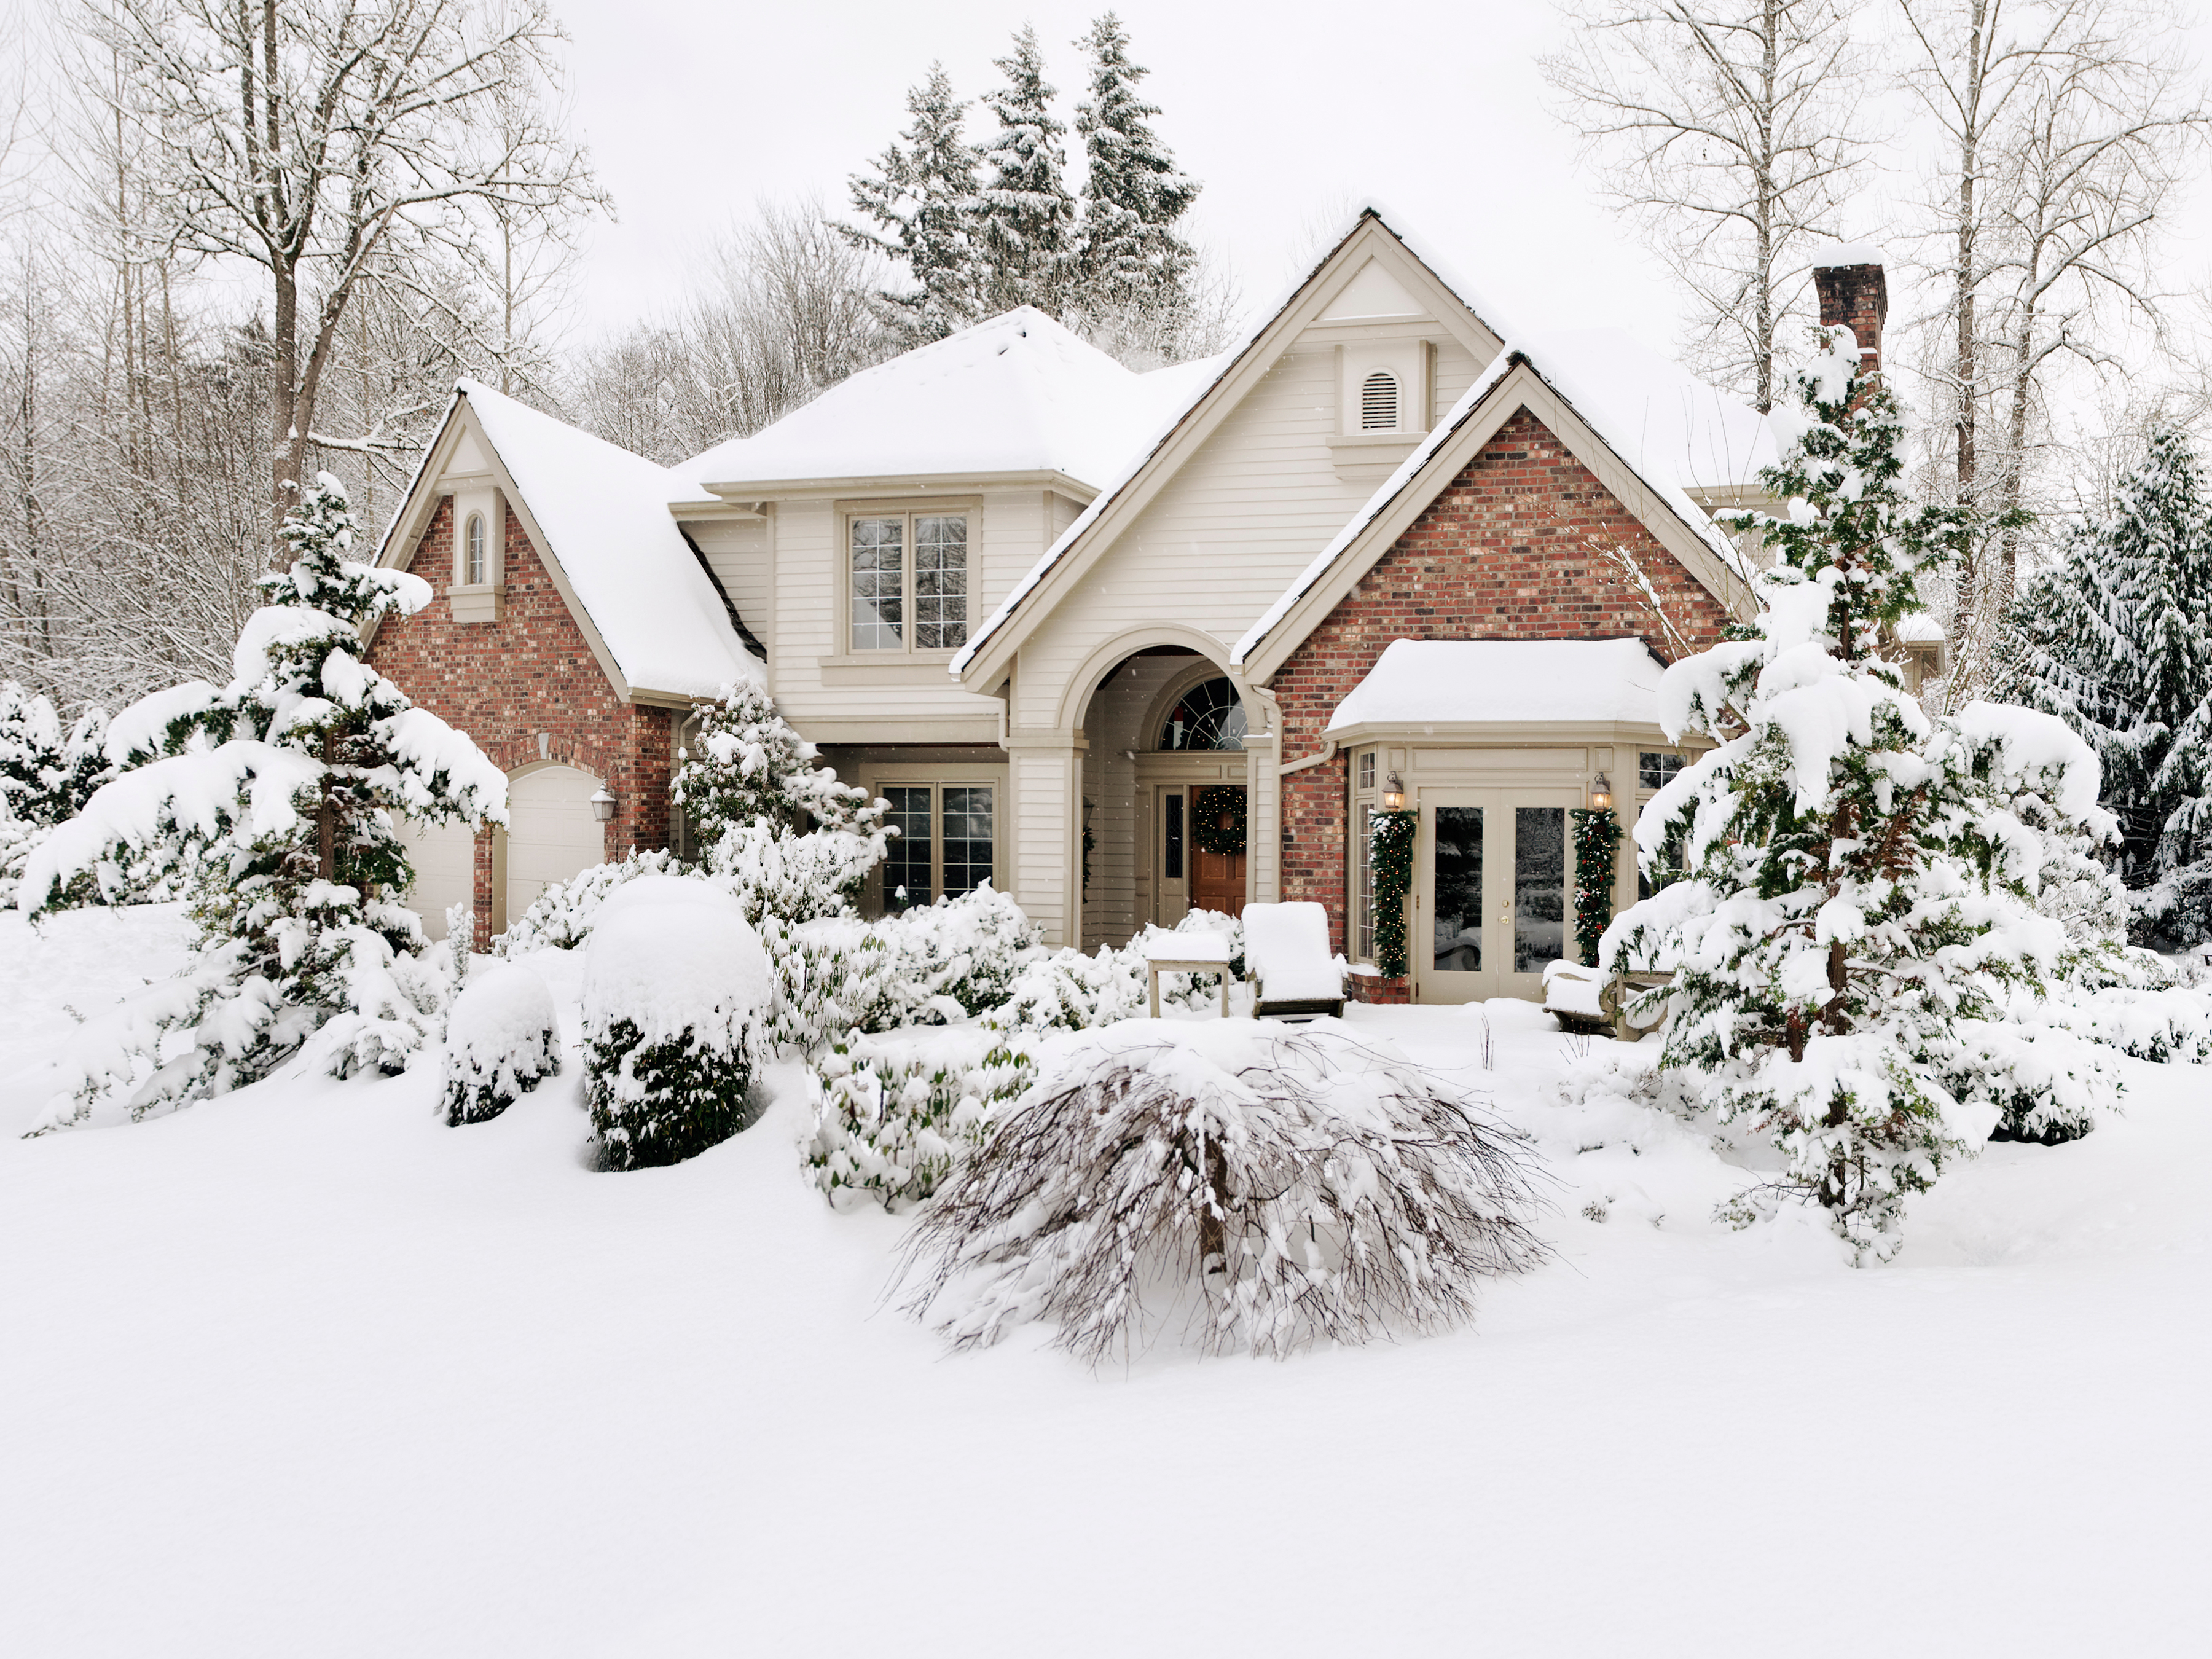 tips on home maintenance during winters in new england